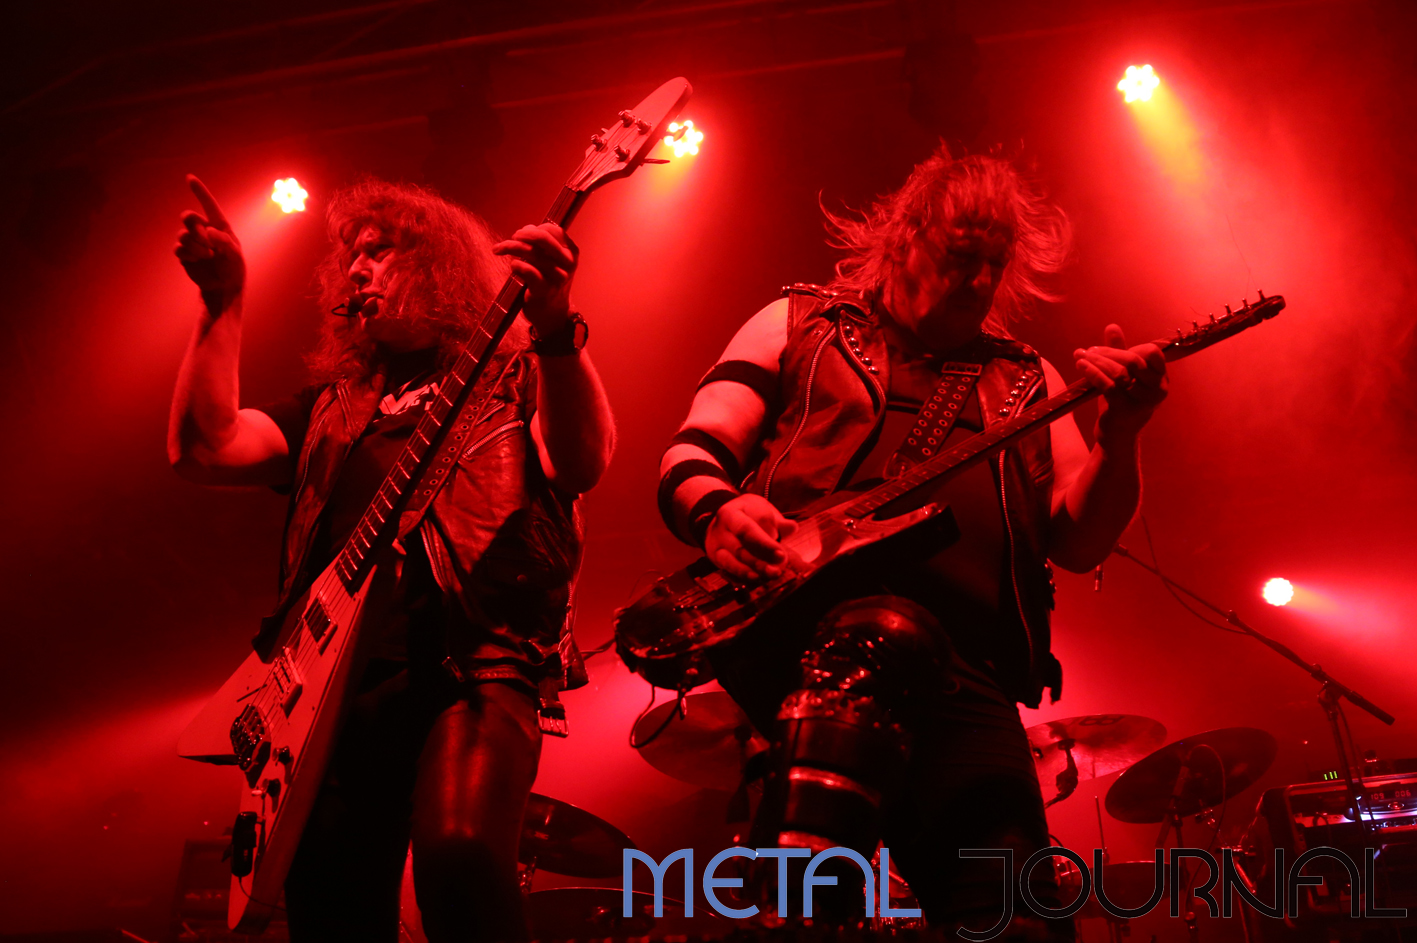 raven metal ournal bilbao pic 2